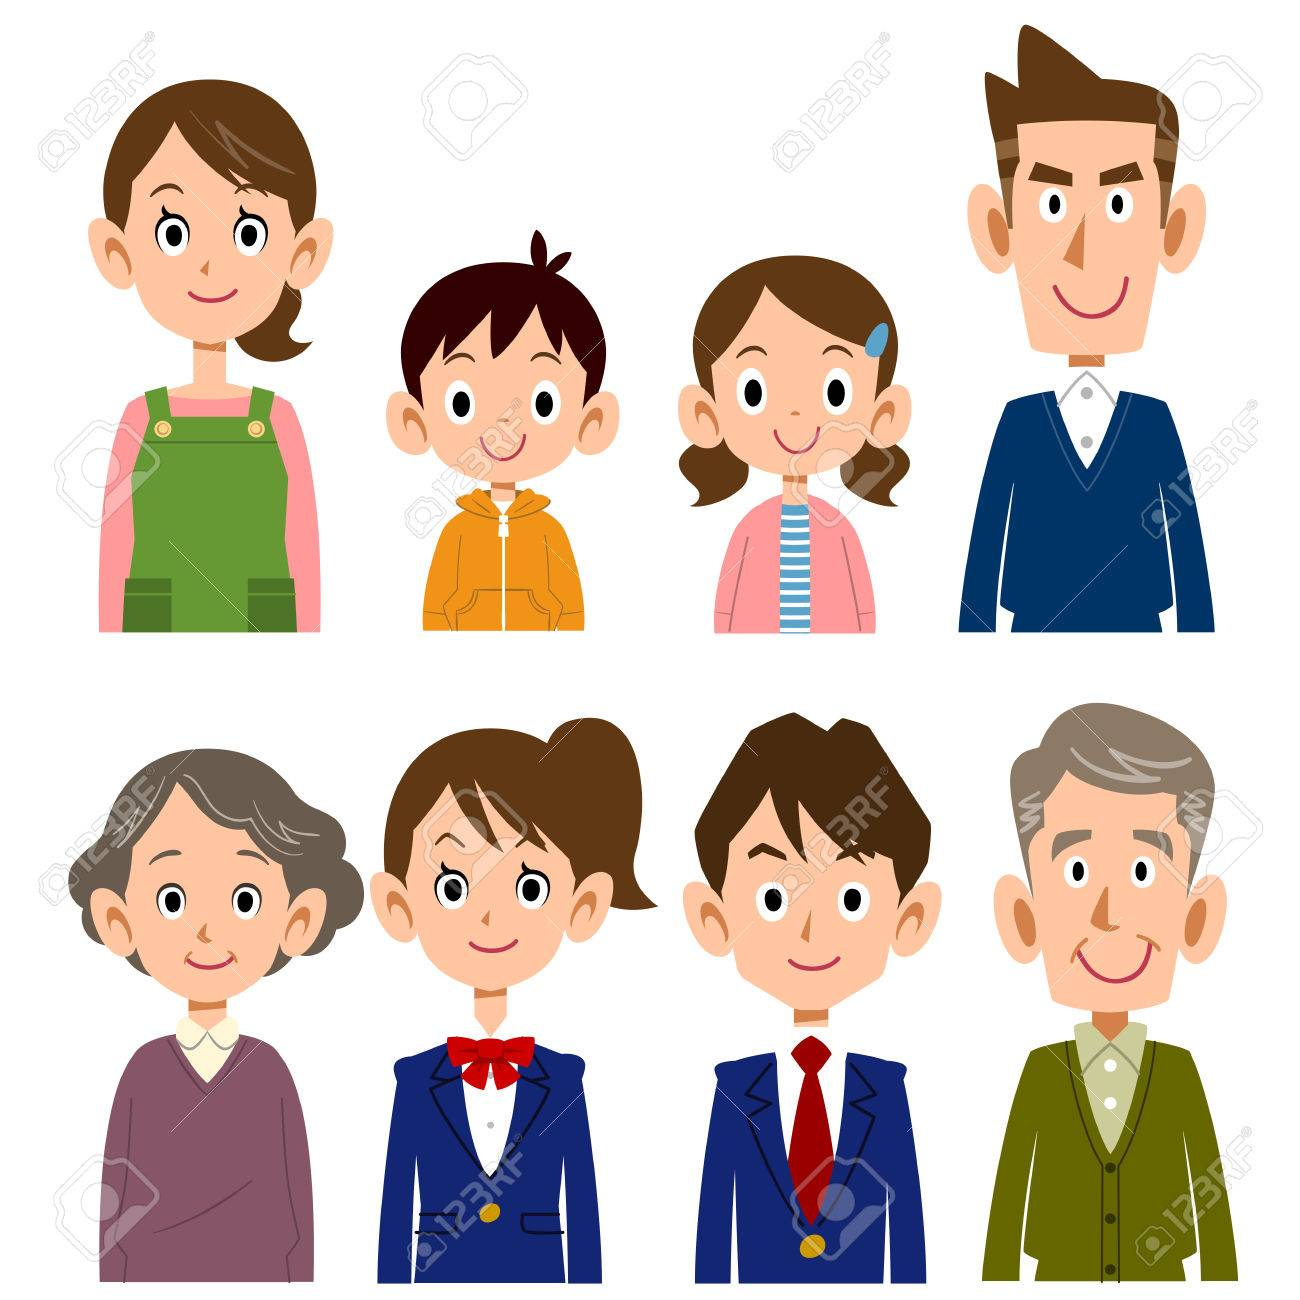 Family of different generations - 55045799